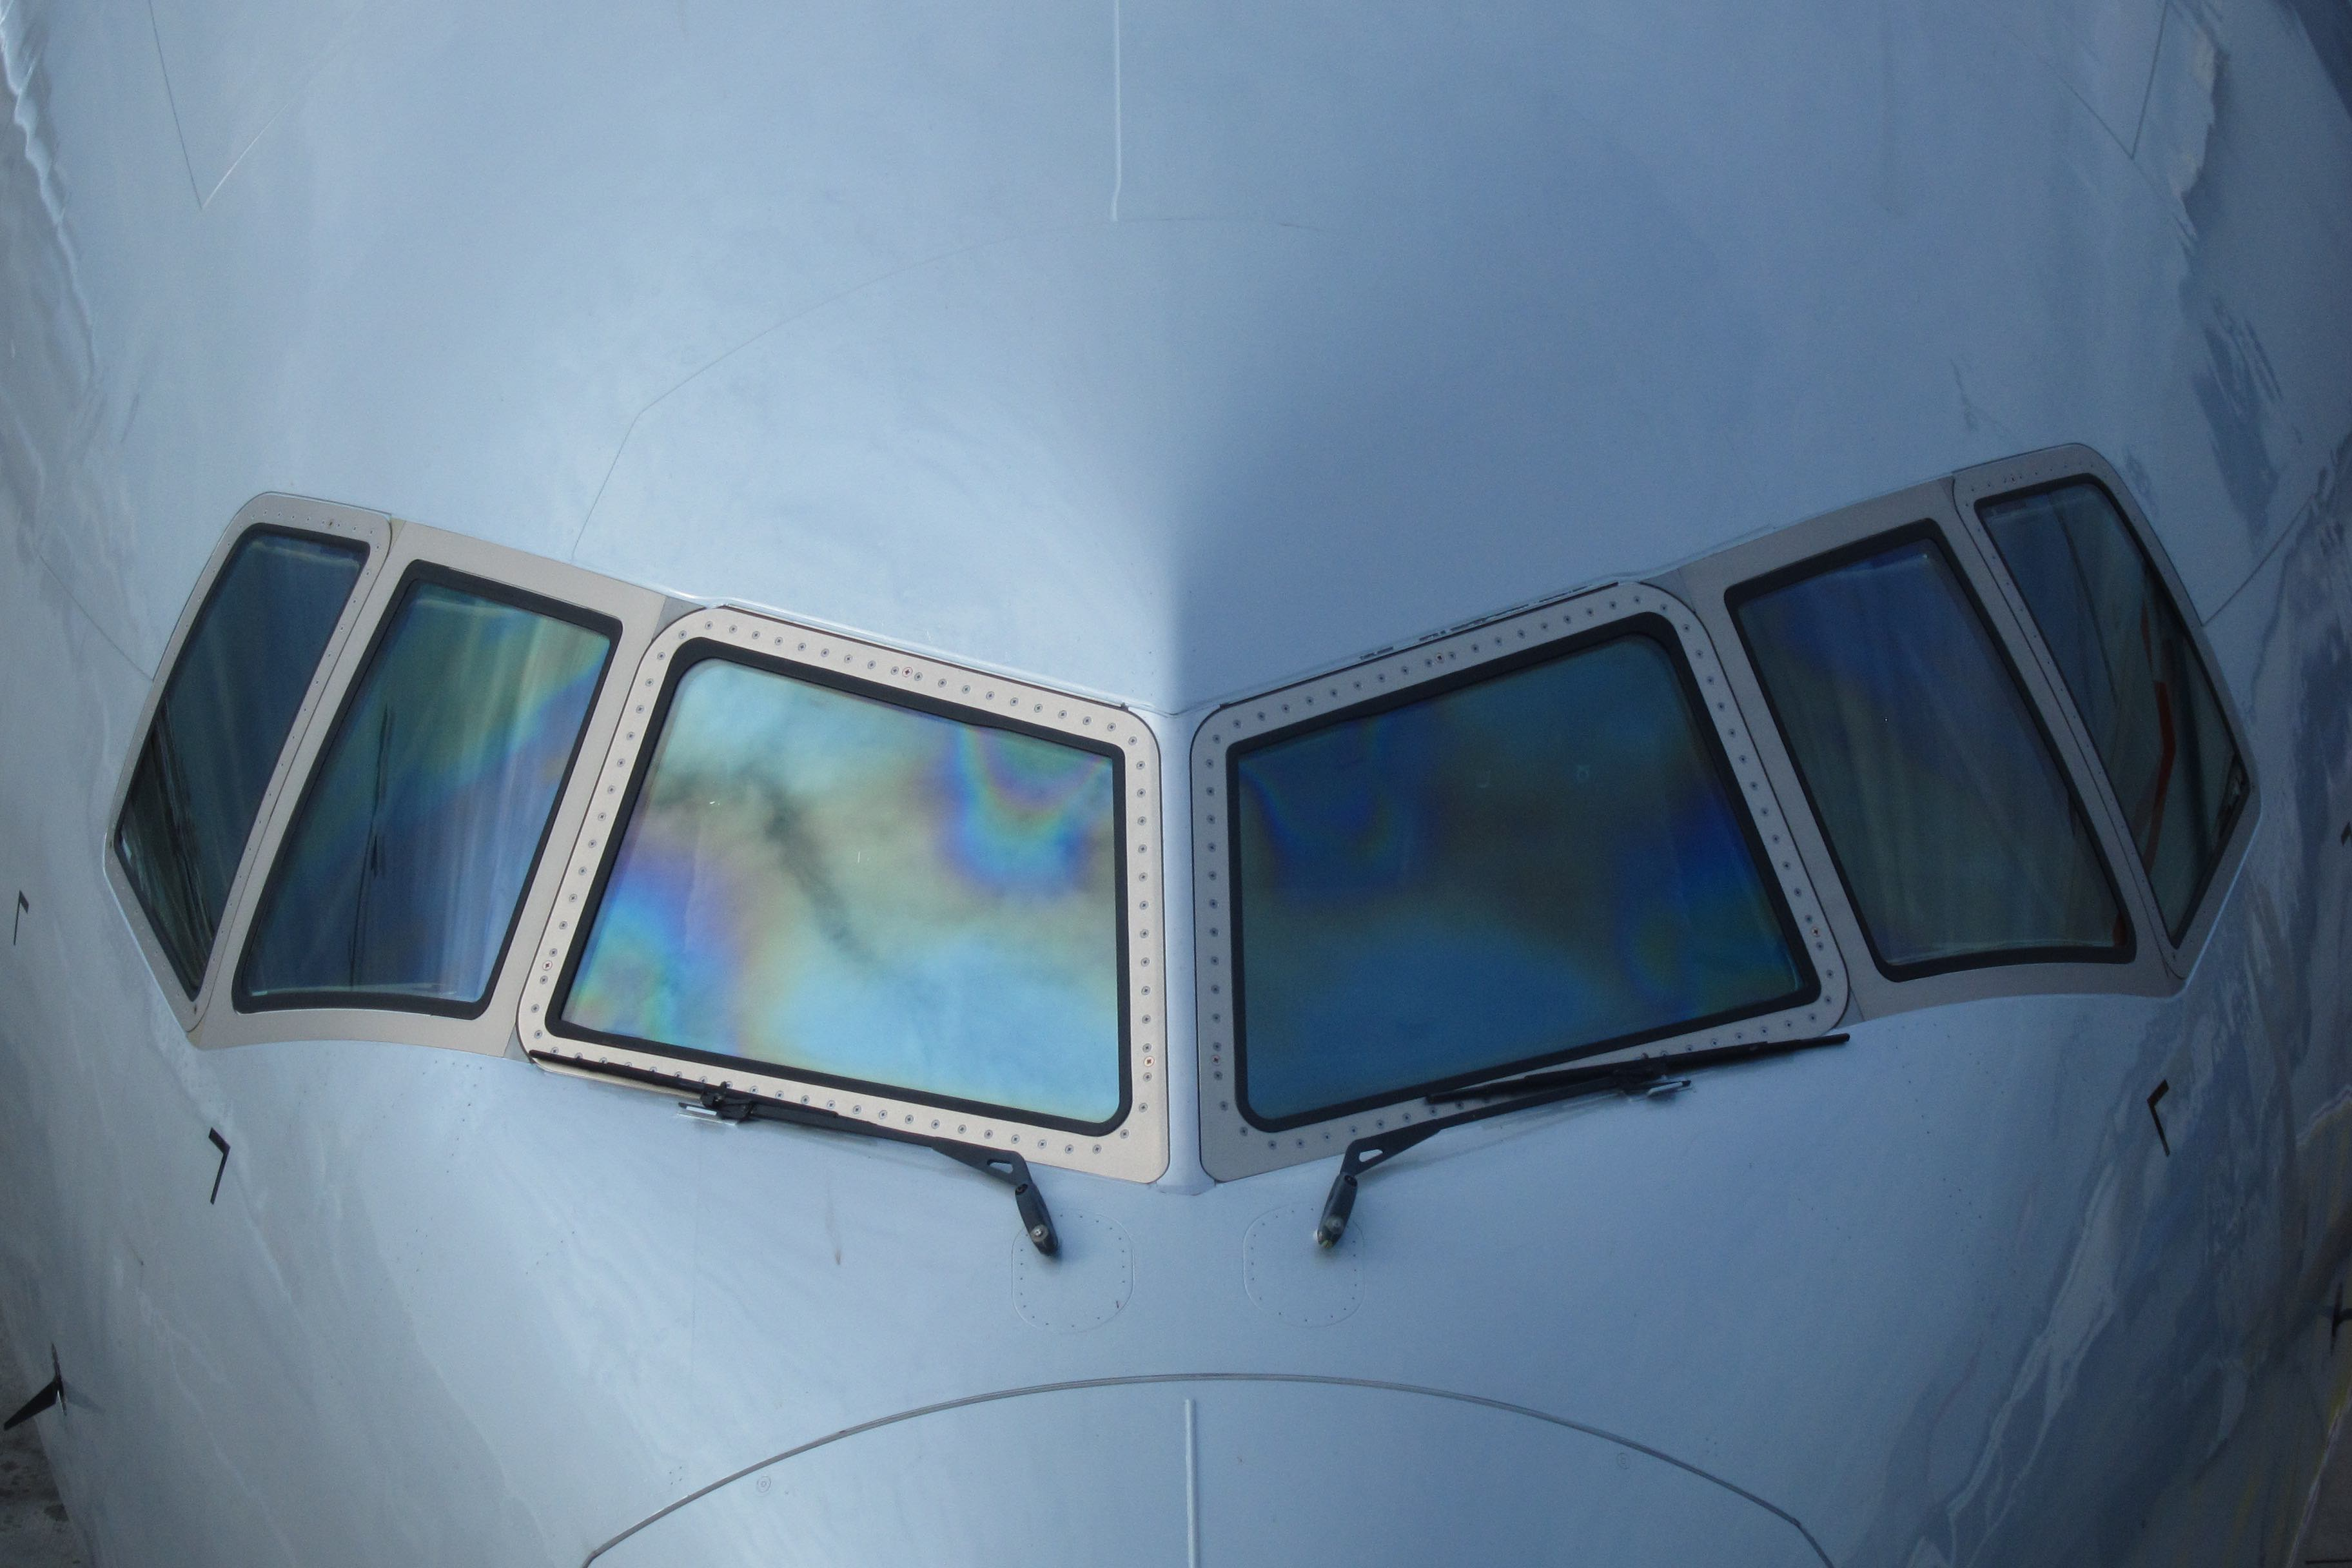 Cracked Windshield Forces Aa Flight To Divert Live And